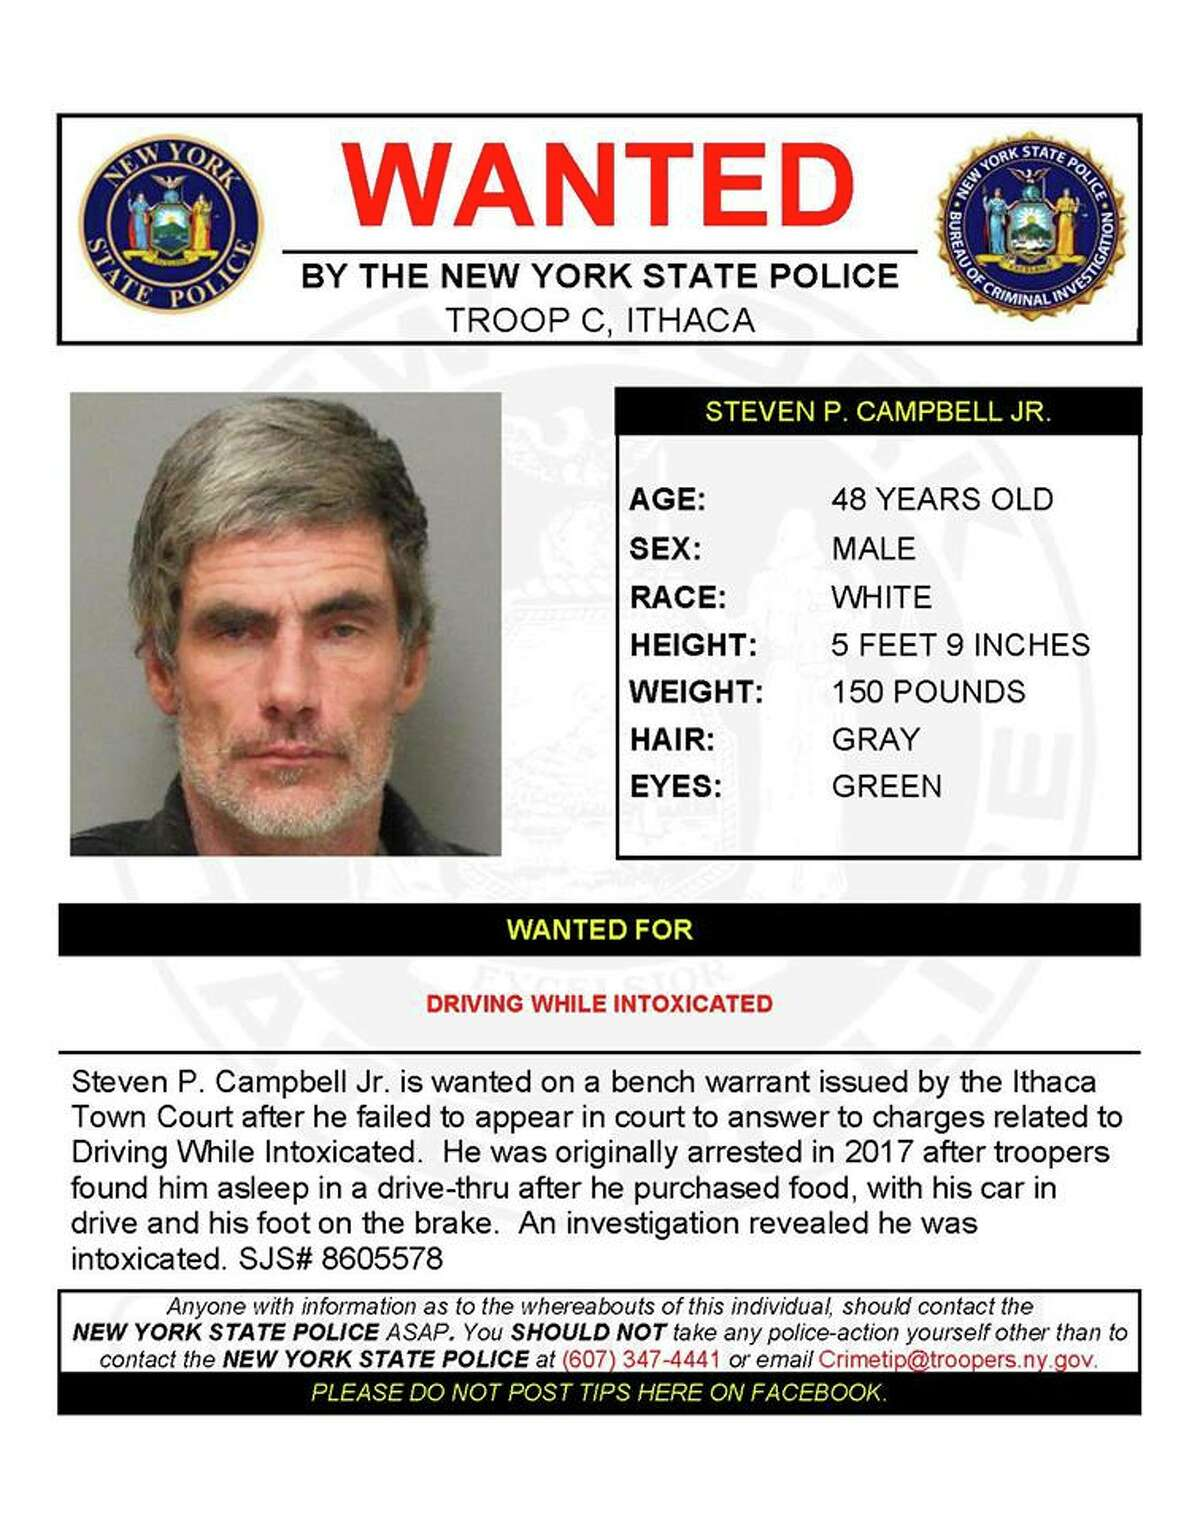 Steven P. Campbell Jr., 48, is wanted on a bench warrant issued by the Ithaca Town Court after he failed to appear in court on a charge of driving while intoxicated. He was originally arrested in 2017 after troopers found him asleep in a drive-through, with his car in drive and his foot on the brake, after he bought food.